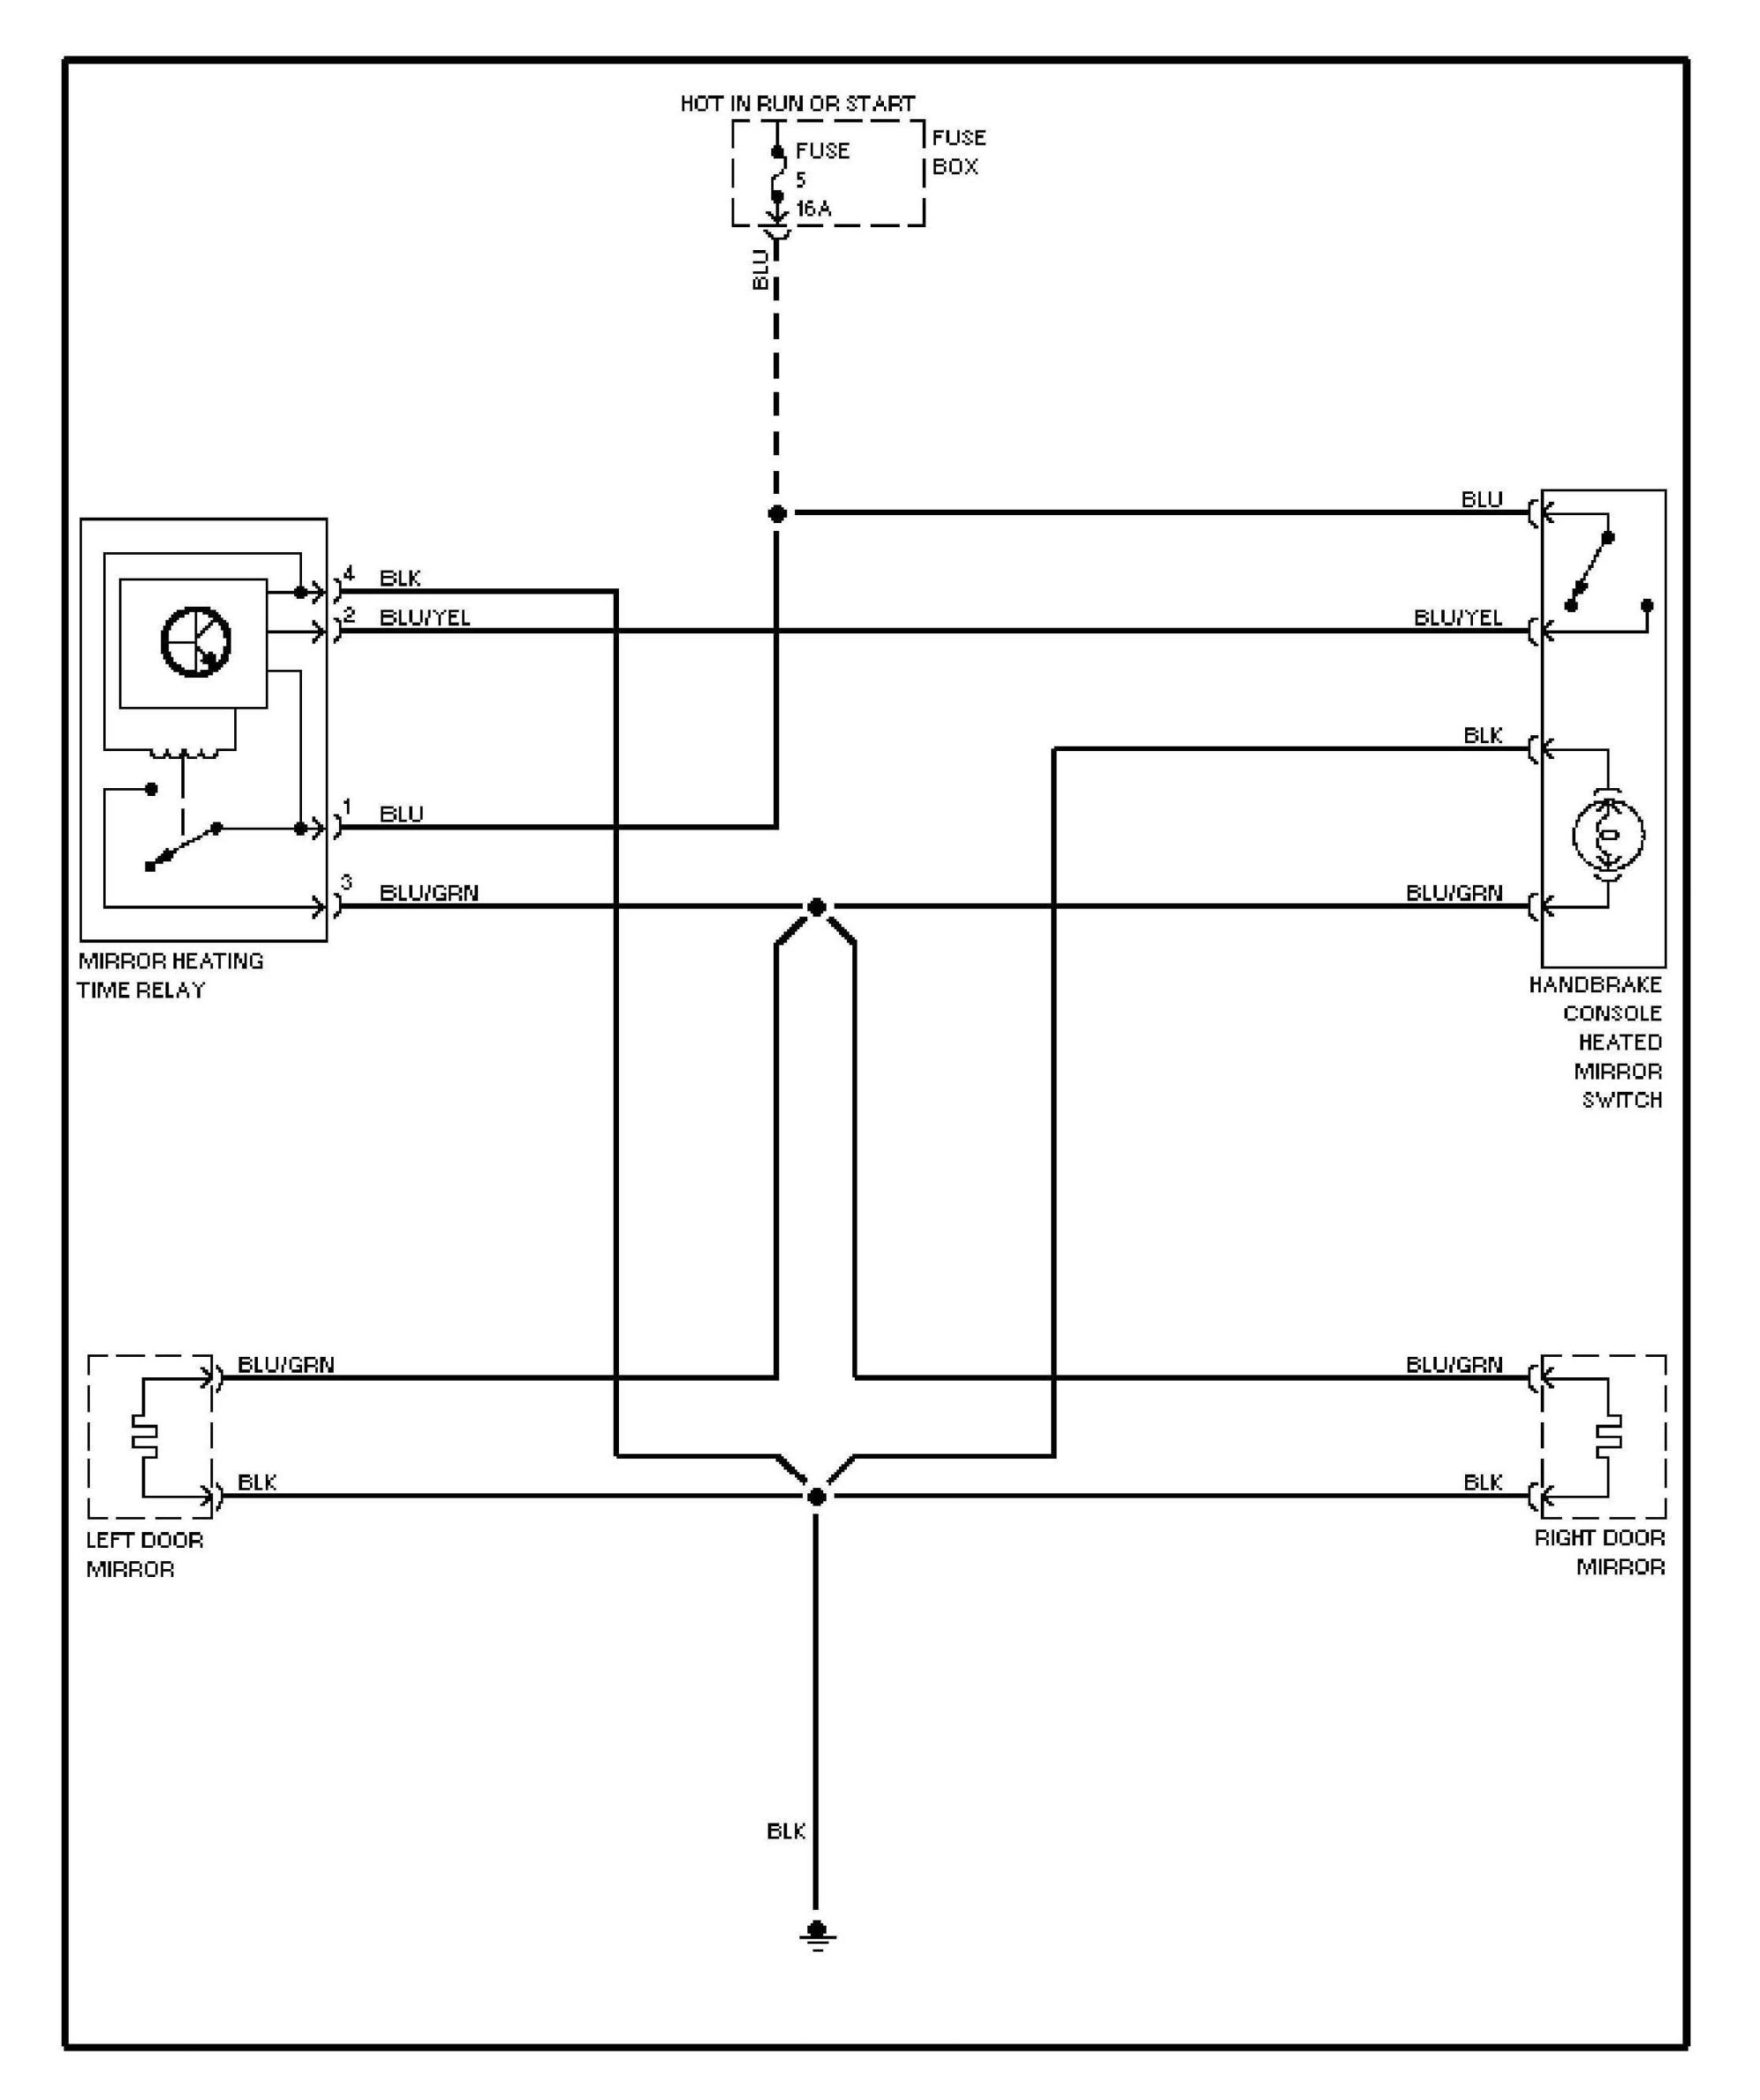 hight resolution of volvo 240 1991 1993 wiring diagrams heated mirrors mercedes benz truck wiring diagram mercedes benz w204